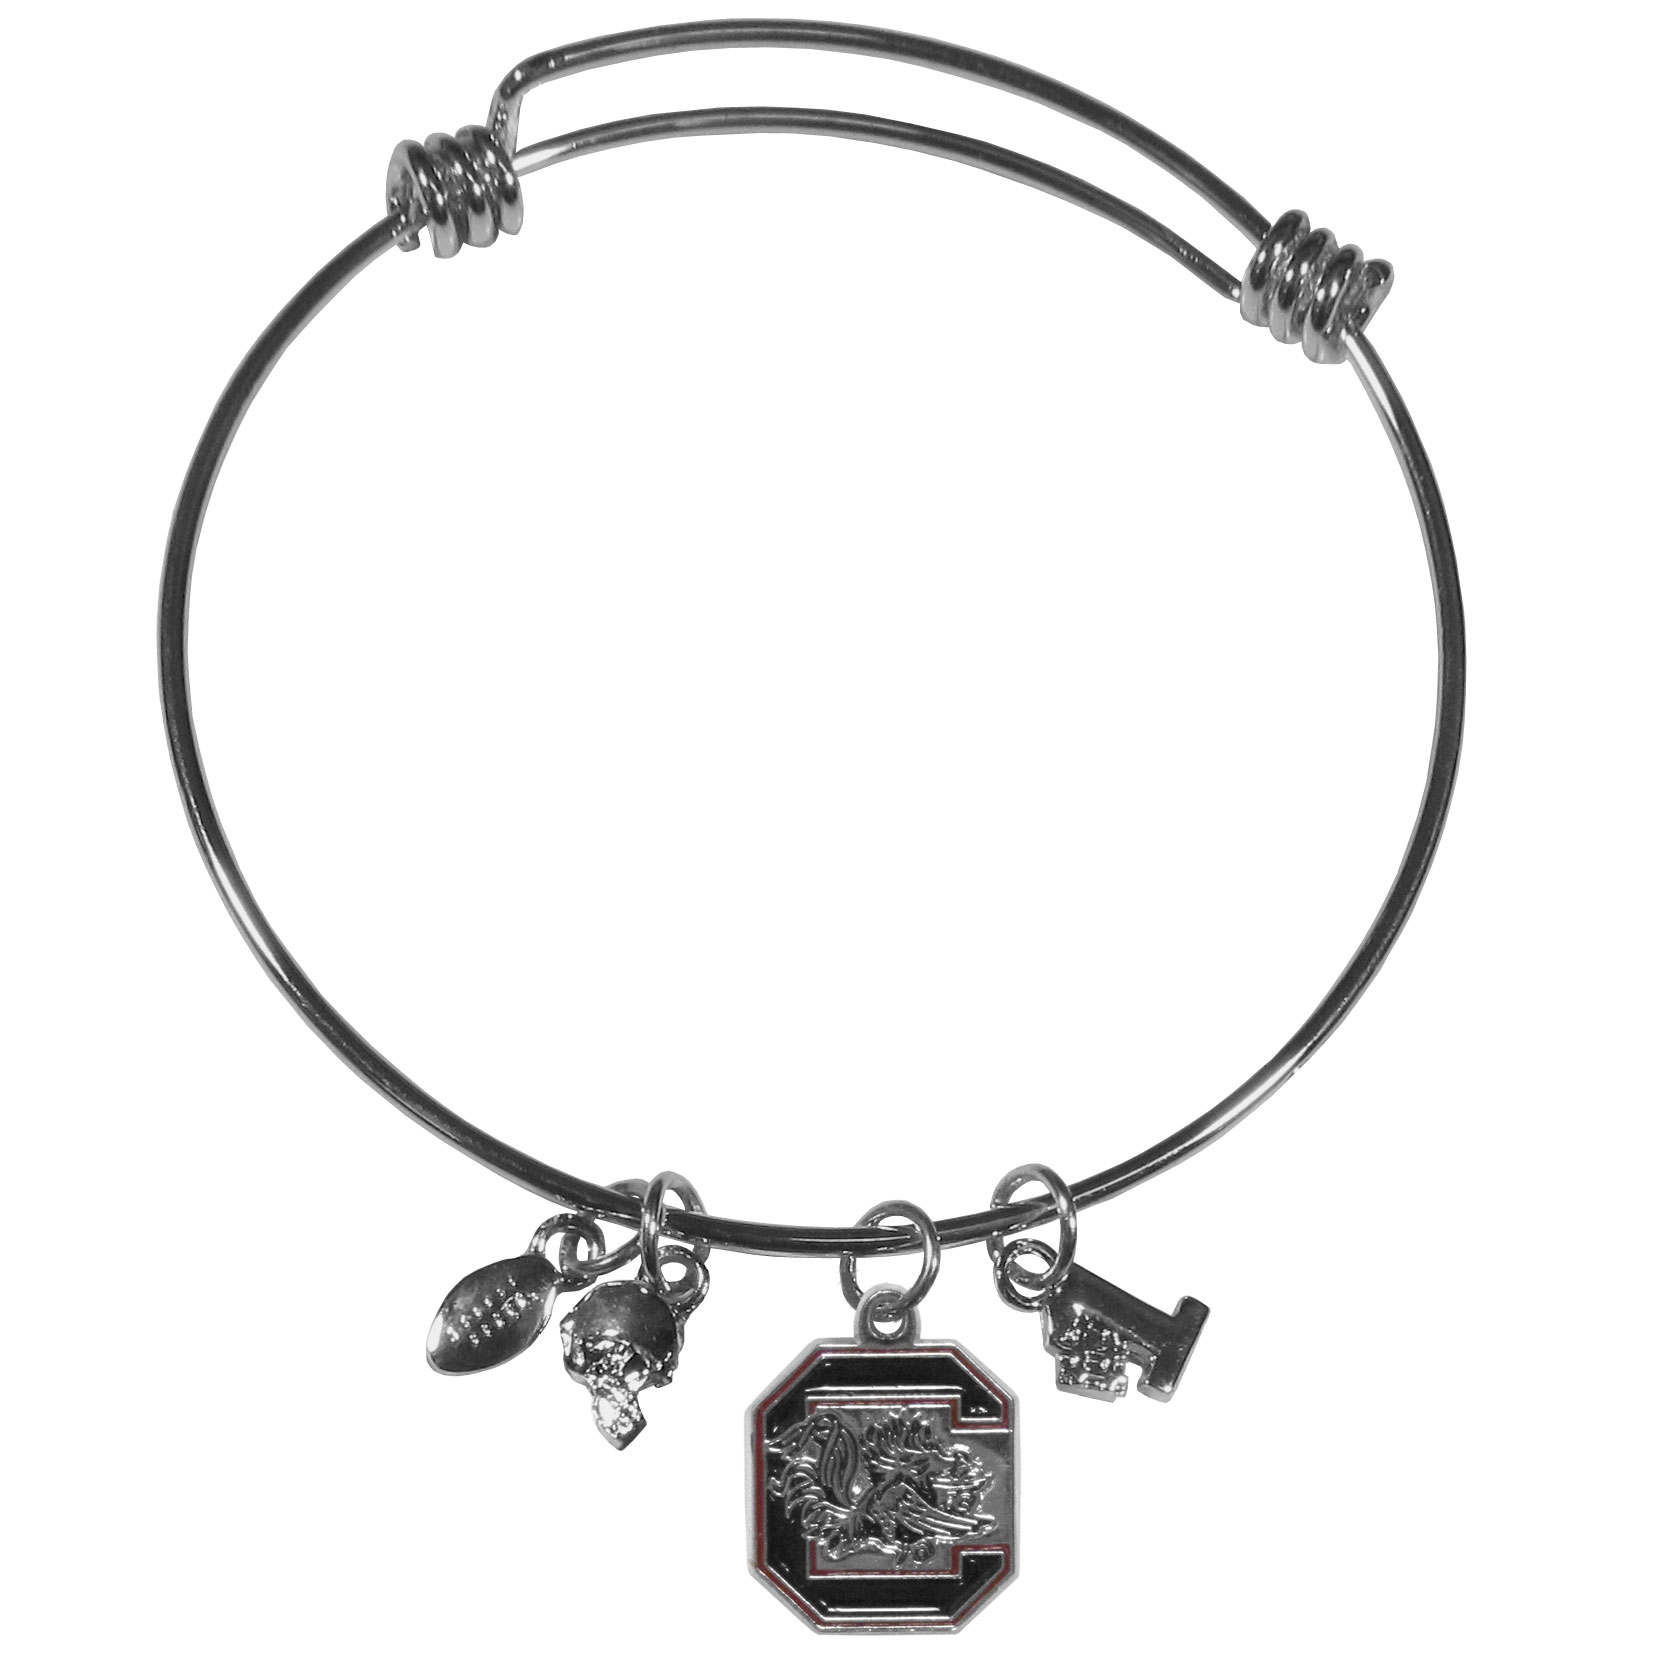 S. Carolina Gamecocks Charm Bangle Bracelet - Adjustable wire bracelets are all the rage and this S. Carolina Gamecocks bracelet matches the popular trend with your beloved team. The bracelet features 4 charms in total, each feature exceptional detail and the team charm has enameled team colors.